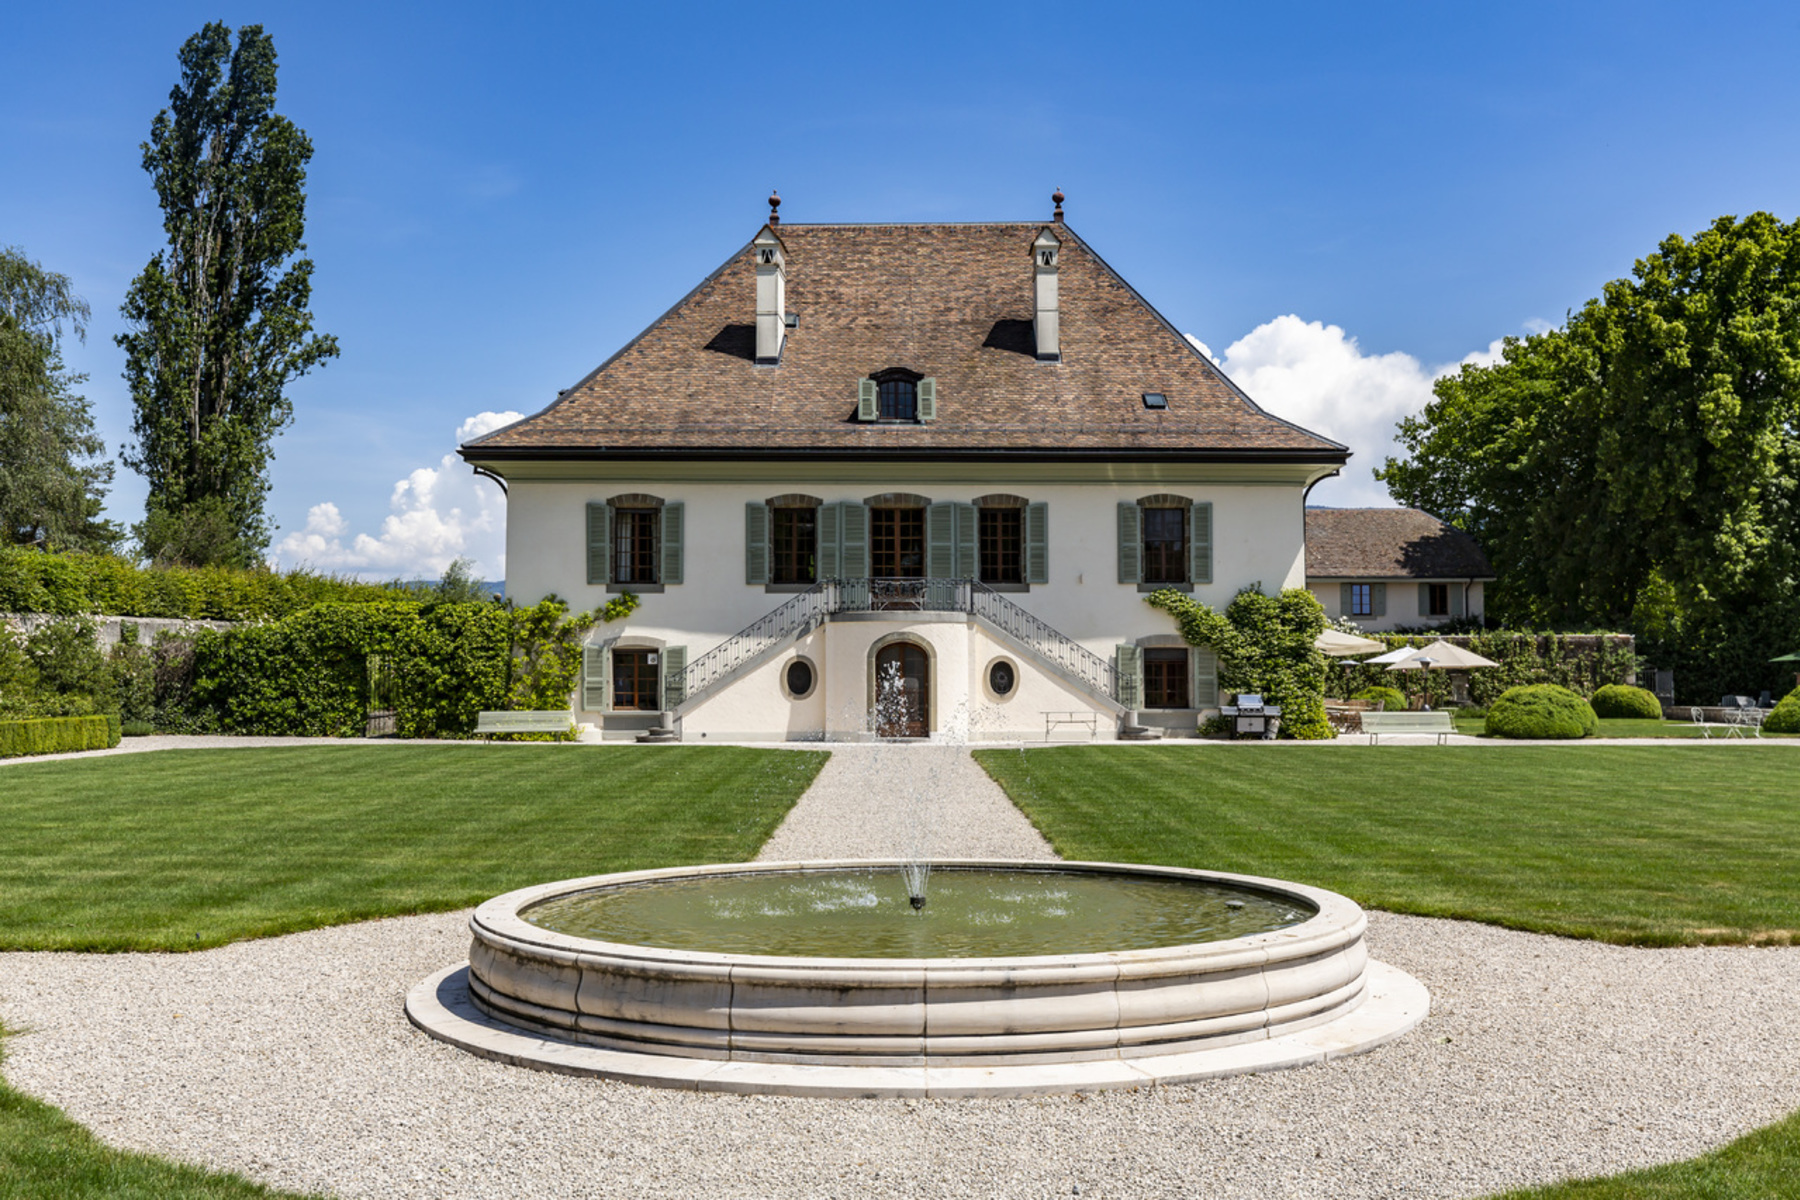 Property のために 売買 アット Royal Estate Merlinge Castle Gy Other Geneve, ジュネーブ 1252 スイス